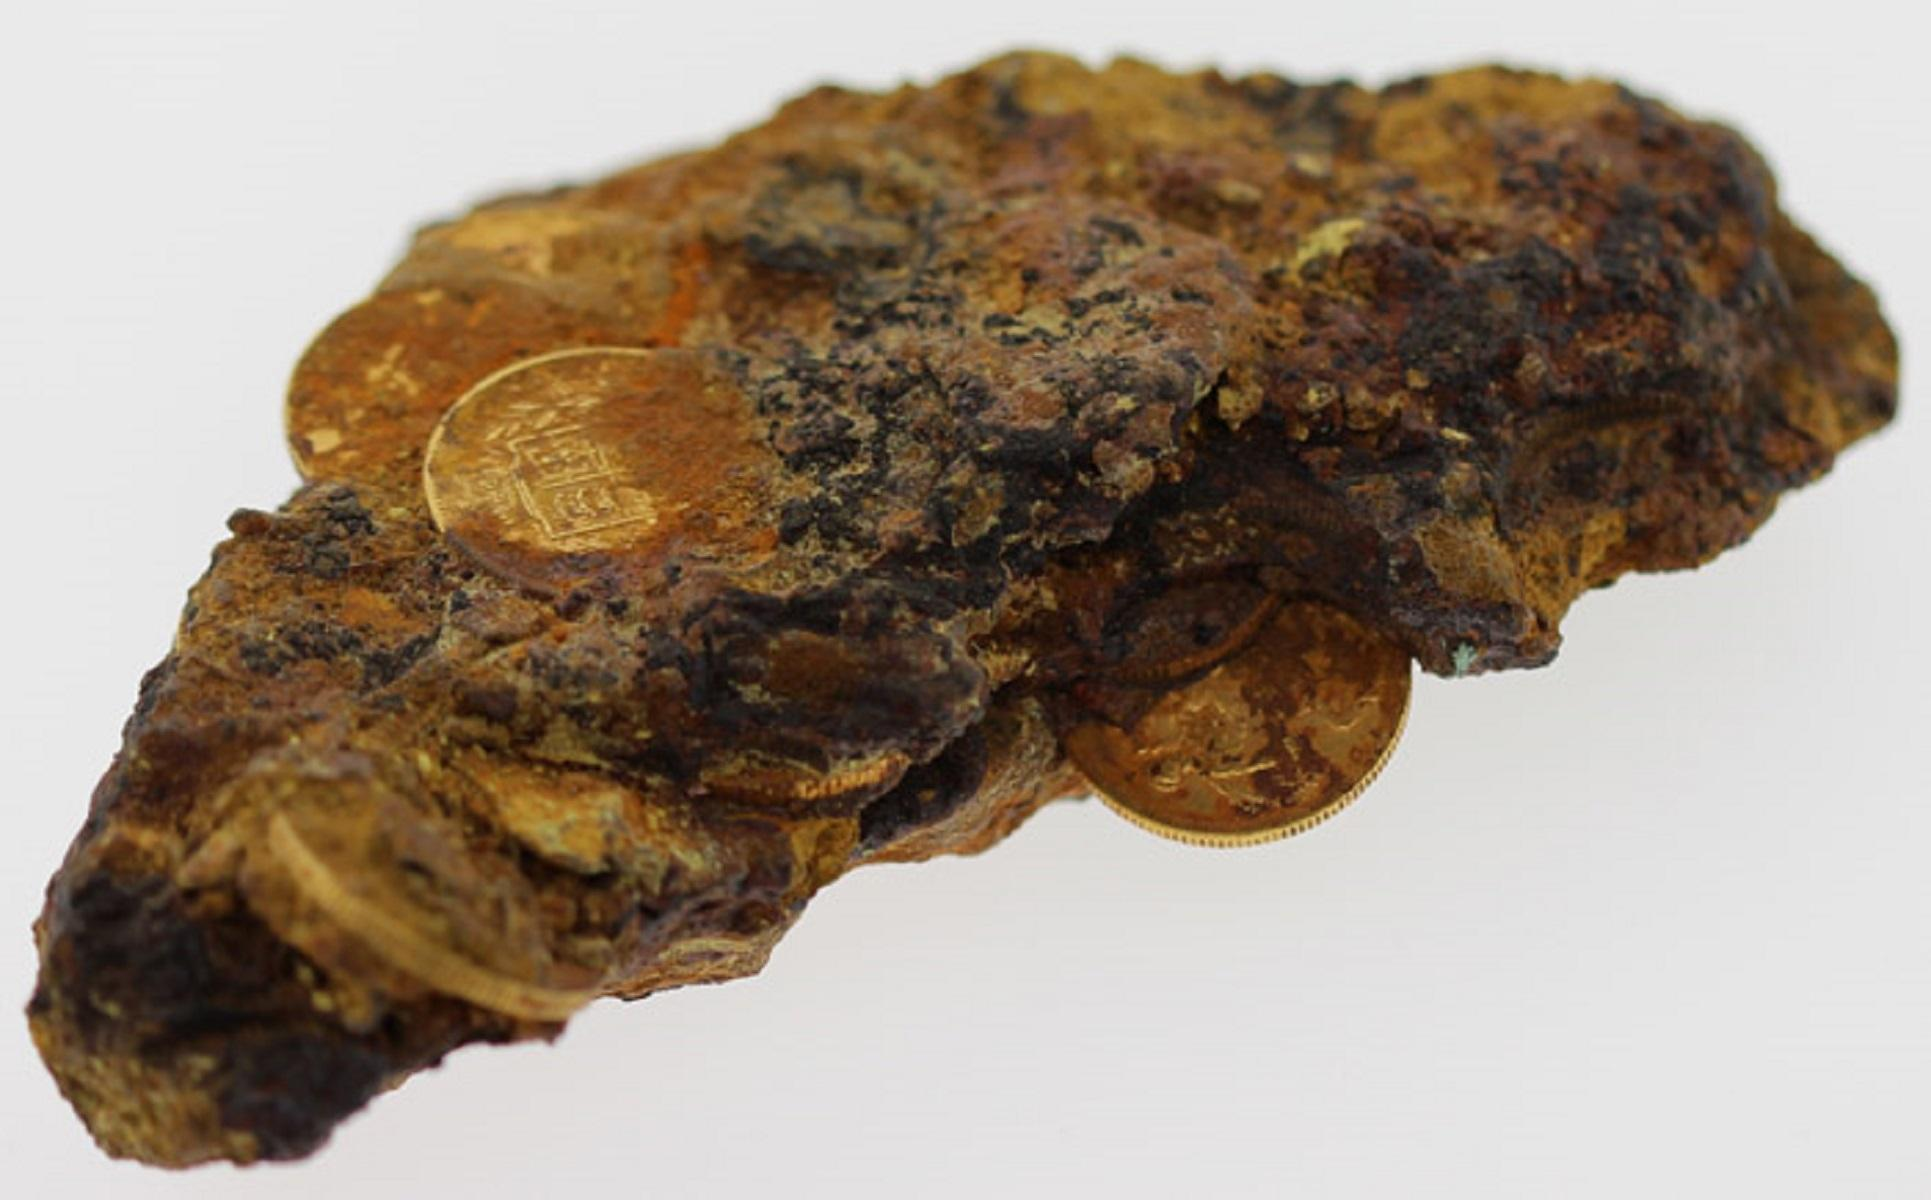 Sea-salvaged Gold Sovereigns (14 visible) subsumed into the surface of the iron holding safe recovered from ship-wreck of the Royal Mail Steamer 'Douro'